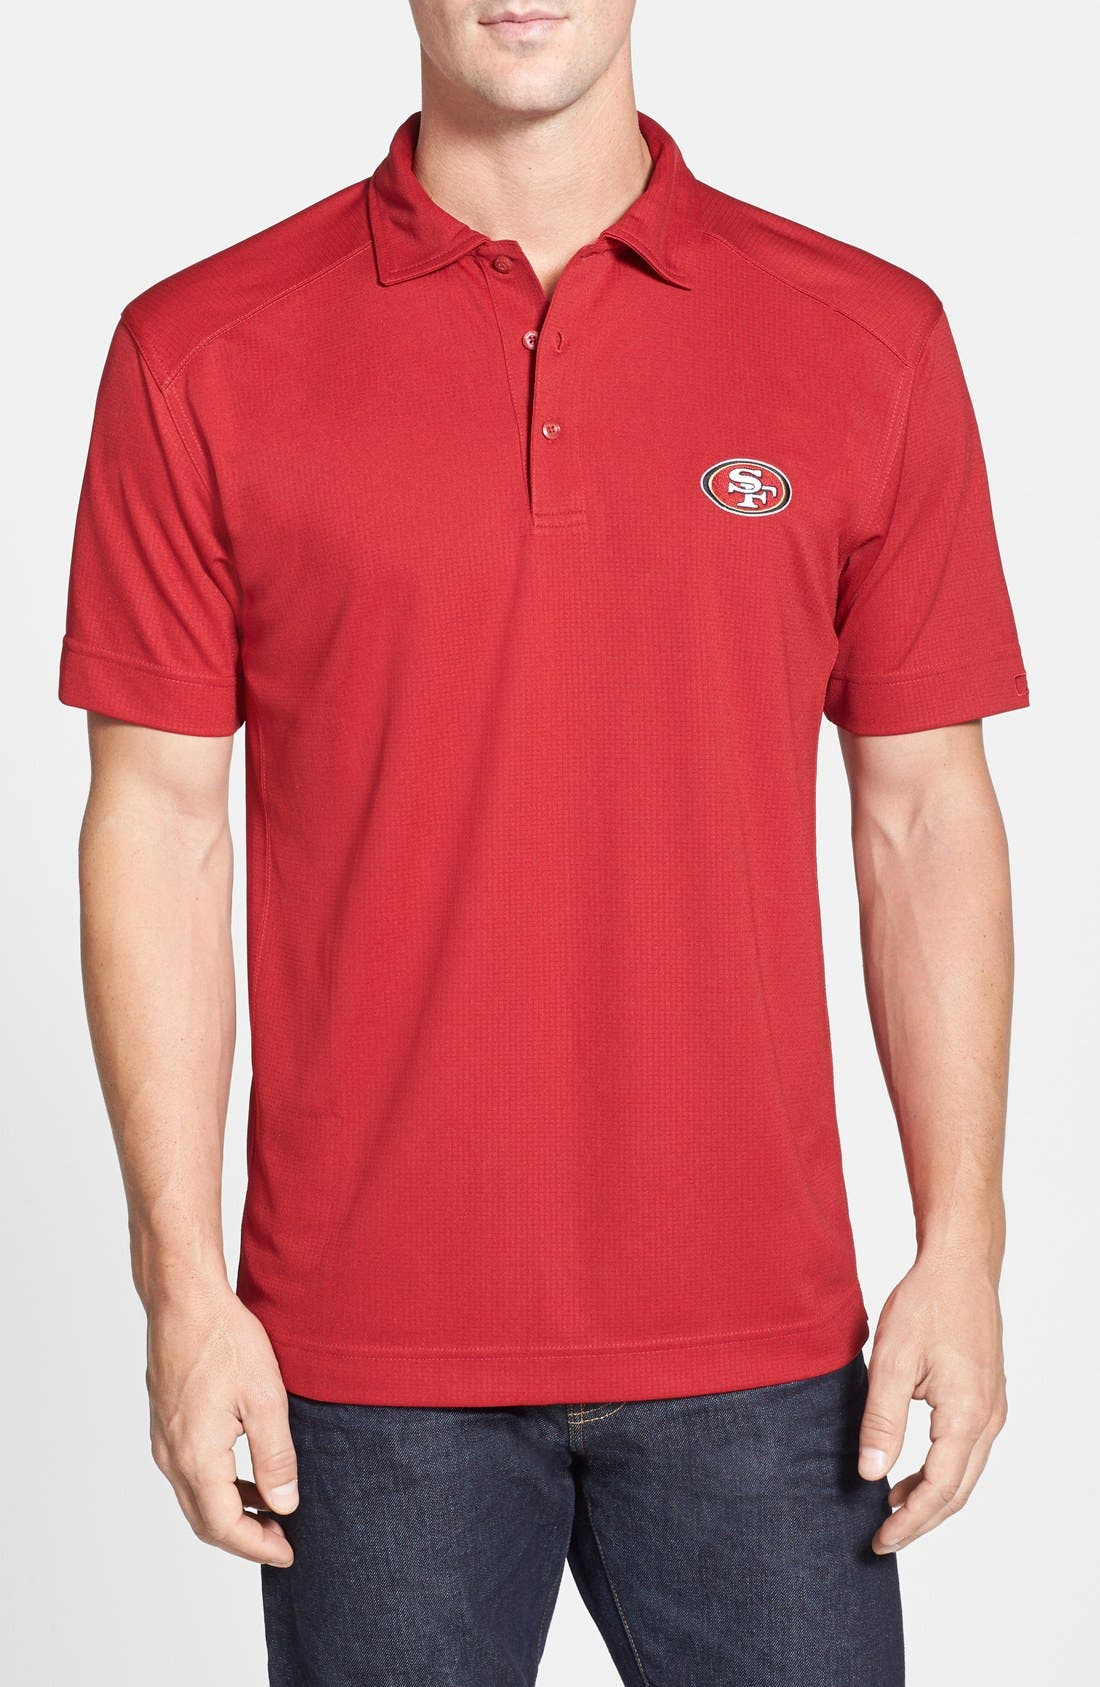 San Francisco 49ers - Genre DryTec Moisture Wicking Polo,                         Main,                         color, Cardinal Red